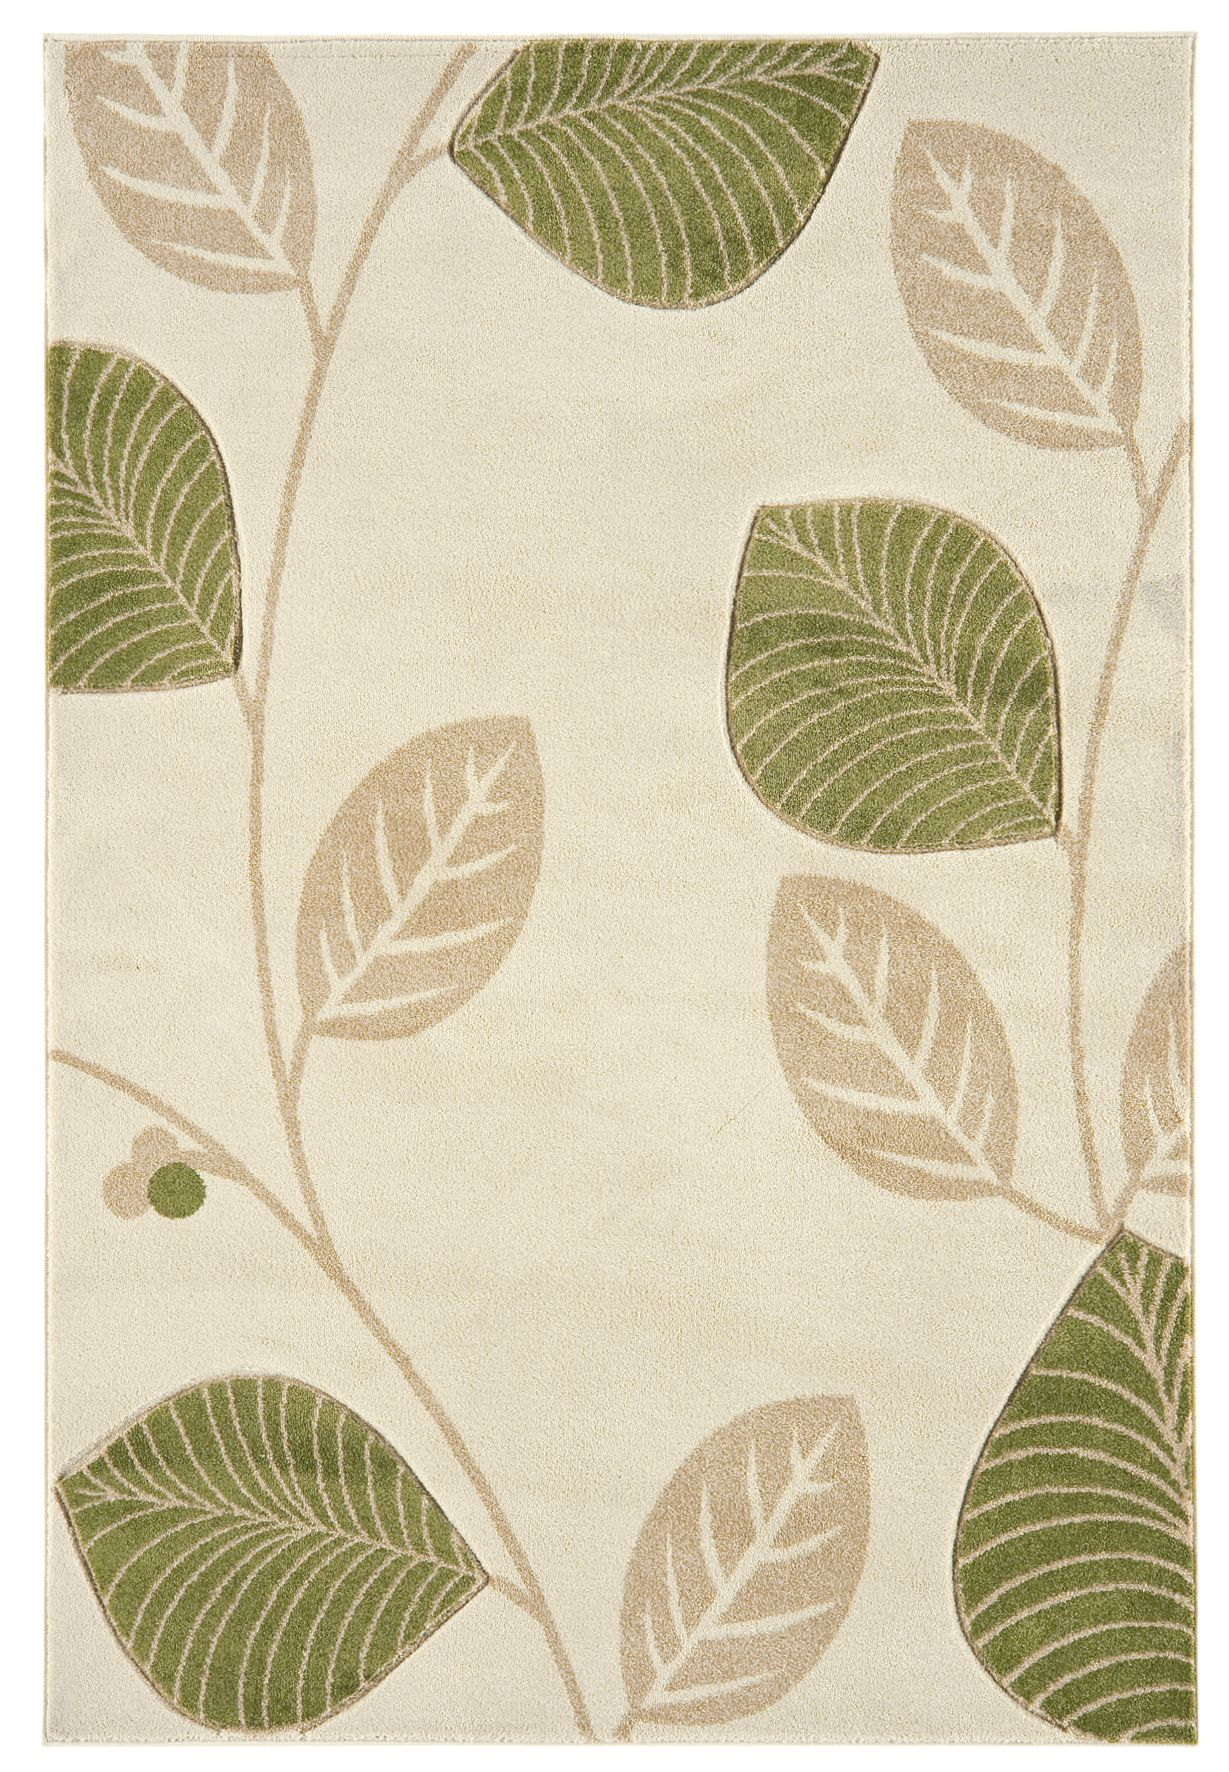 Natural Cream And Green Leaves Fl Living Room Rug